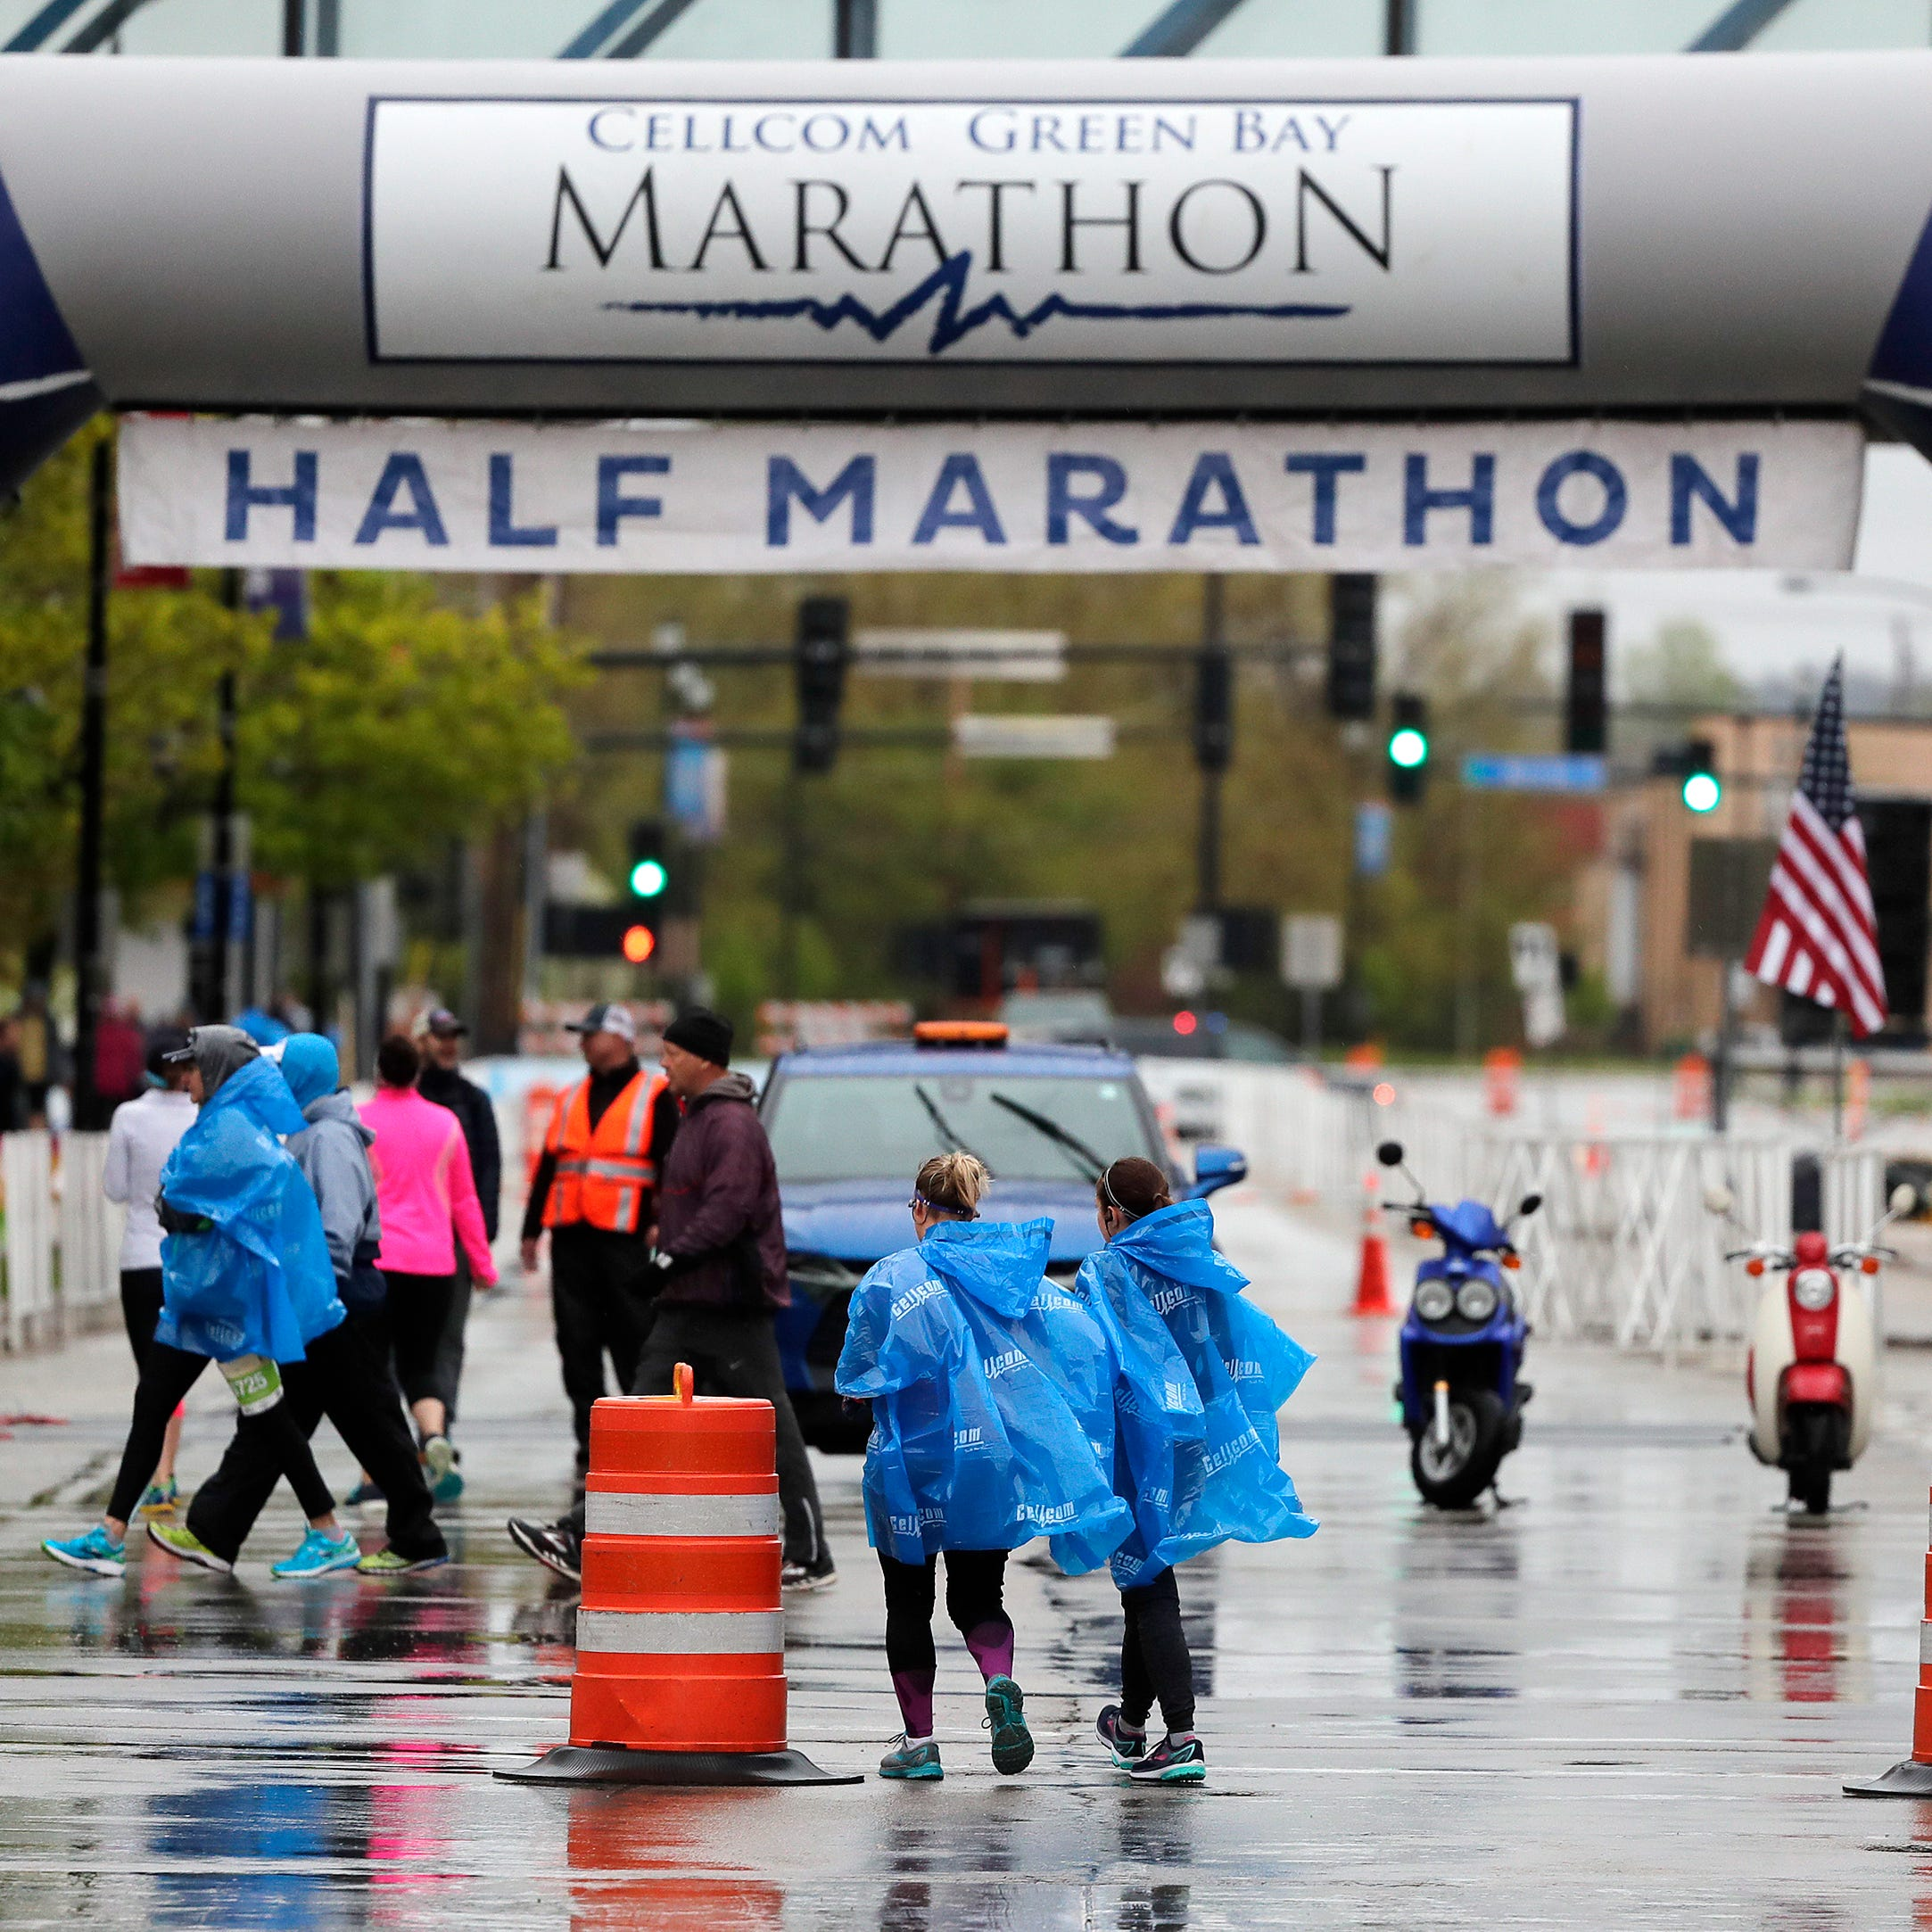 Flooding cancels full marathon but doesn't dampen spirits at Cellcom Green Bay Marathon